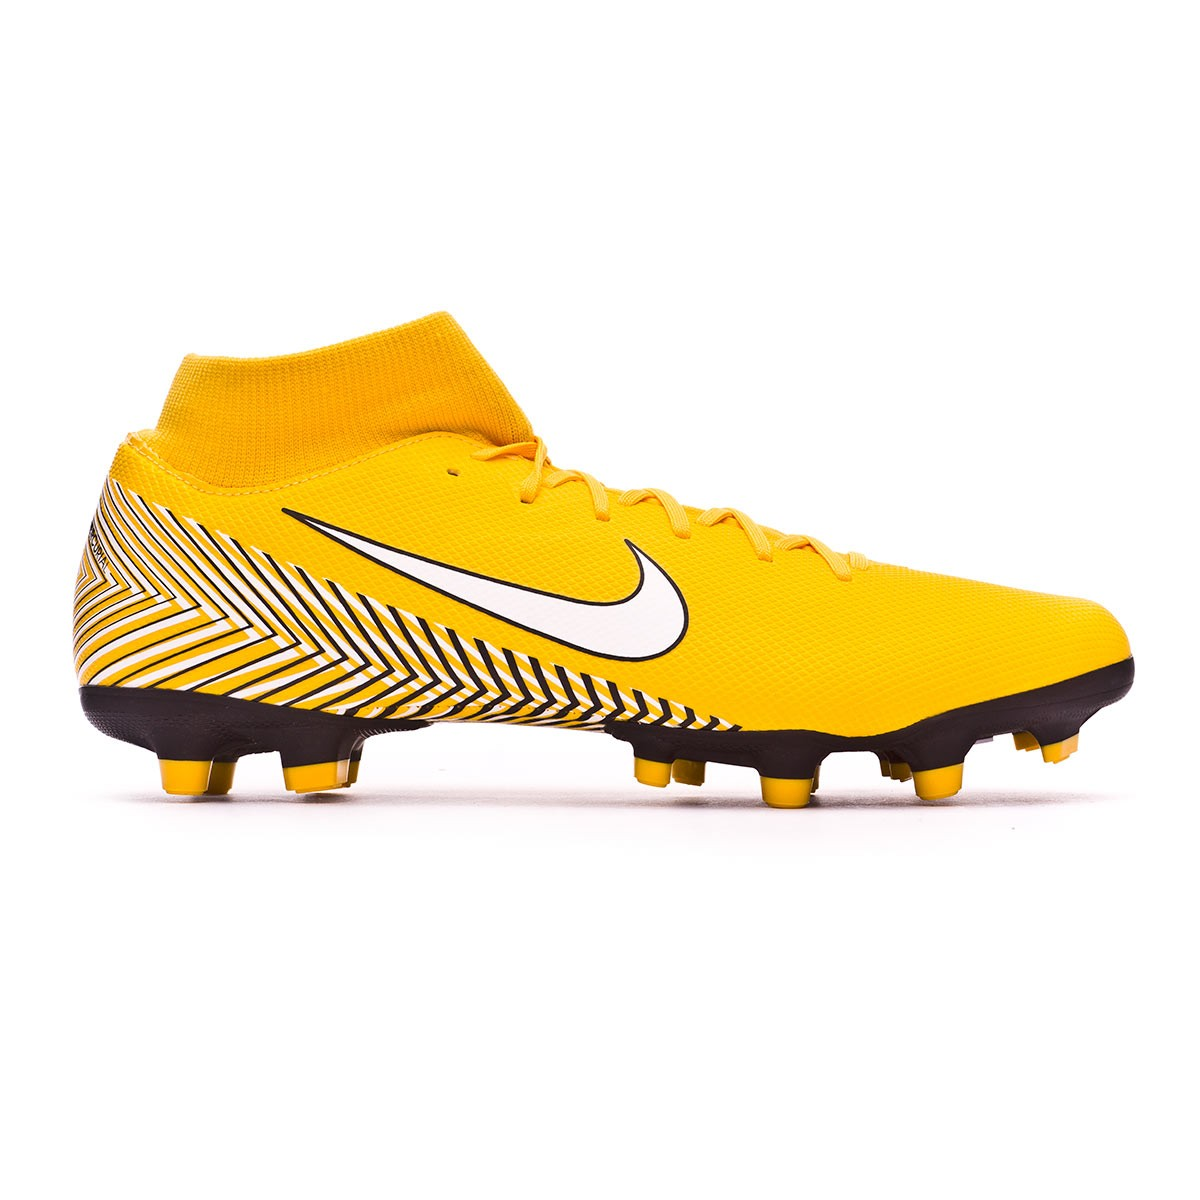 cf3c530ce Football Boots Nike Mercurial Superfly VI Academy MG Neymar Yellow-Black -  Tienda de fútbol Fútbol Emotion